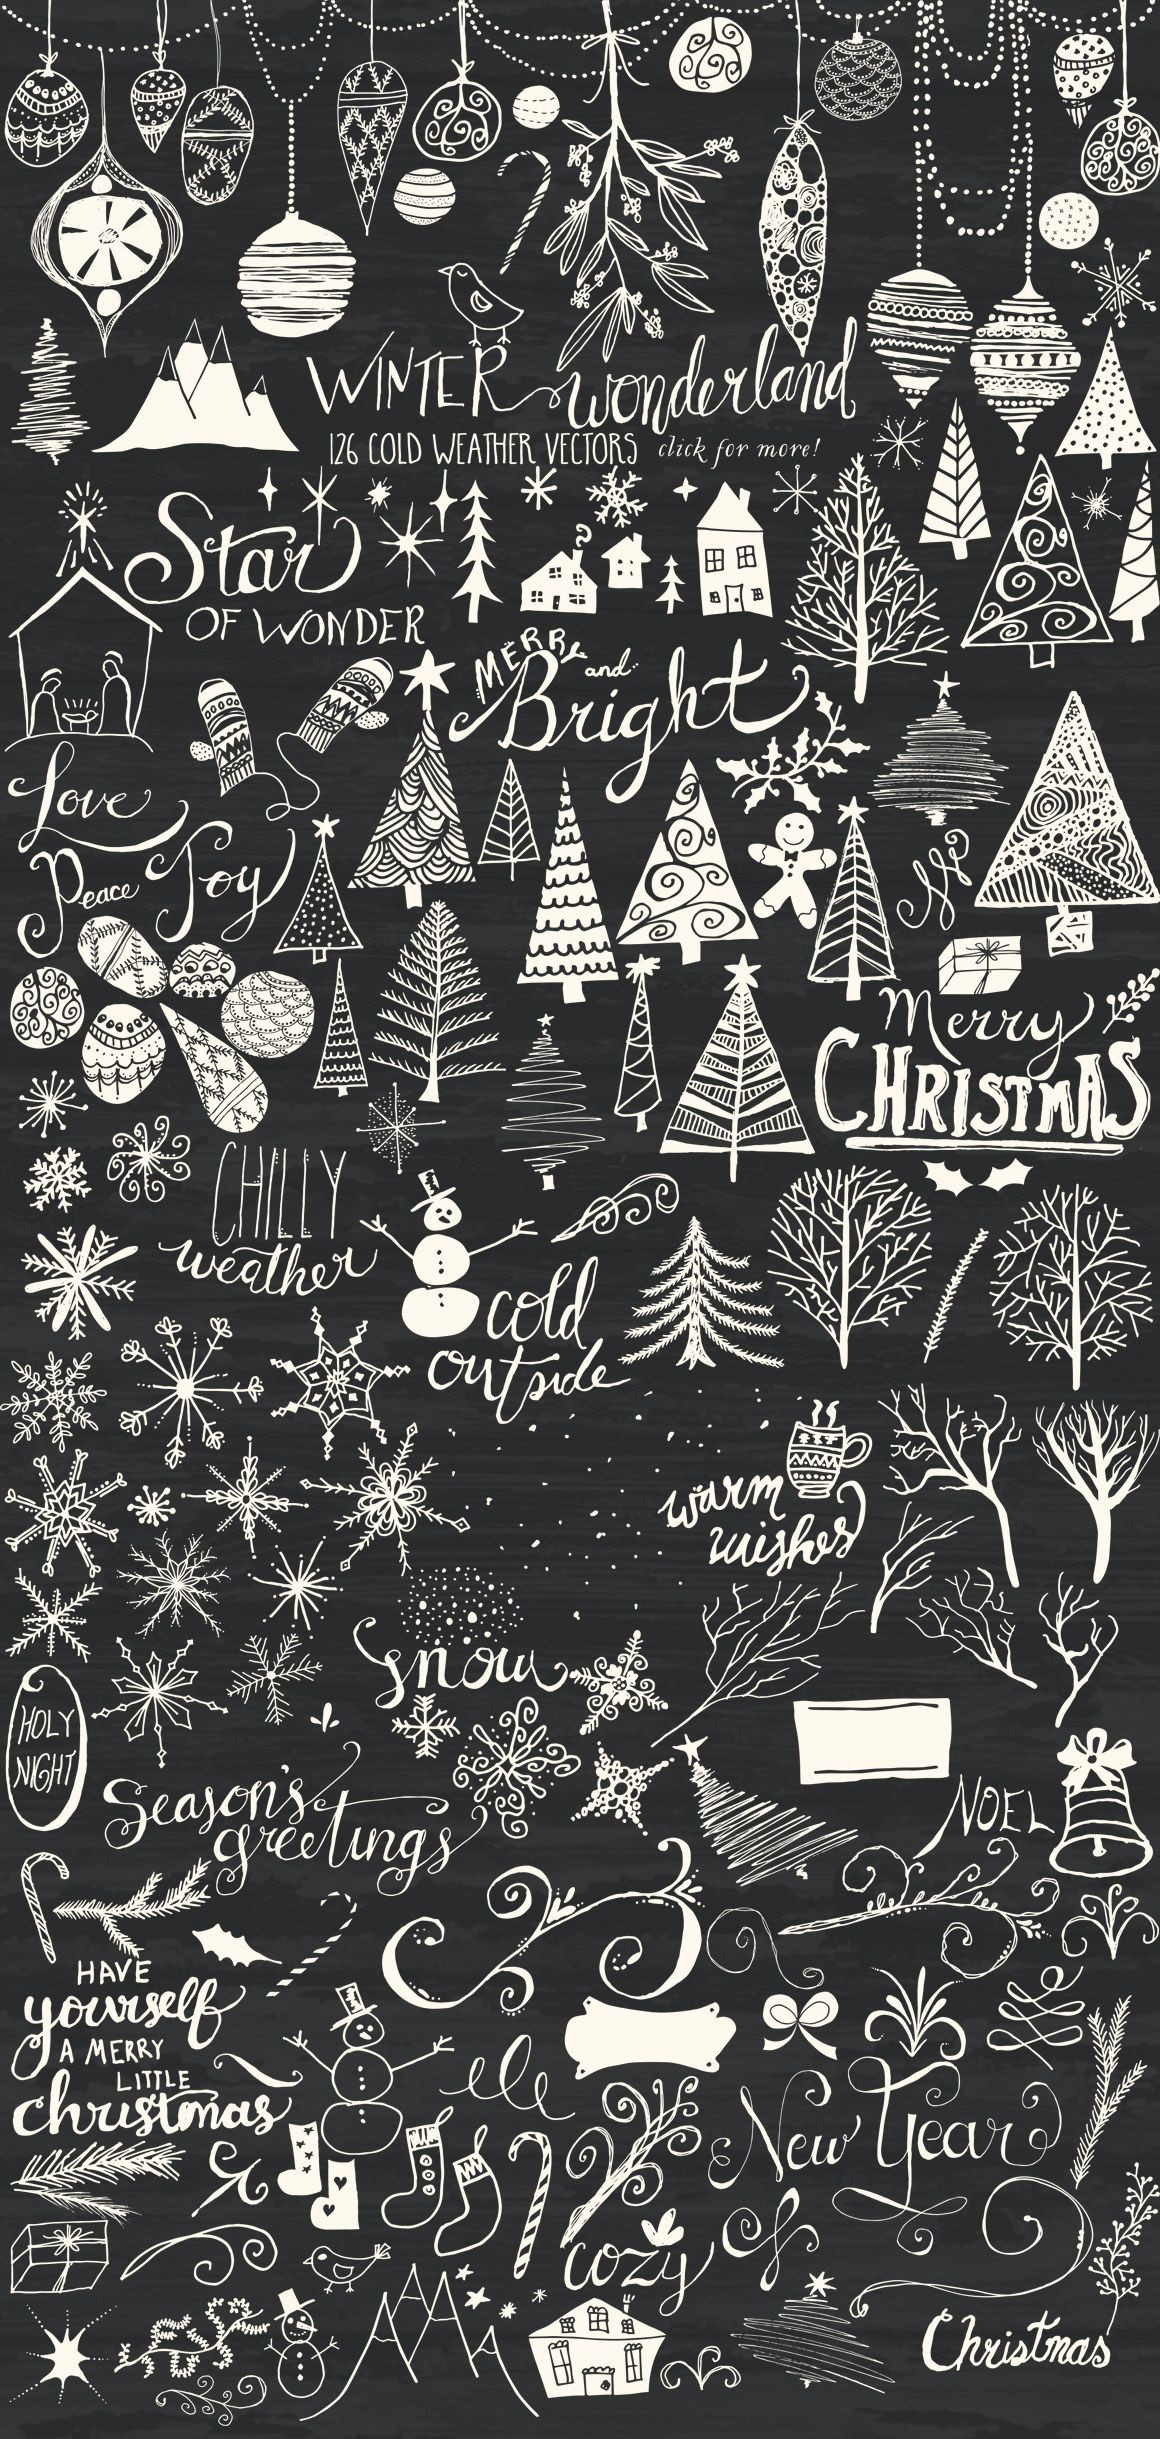 Malvorlagen Weihnachten Neu F Winter Wonderland Bundle by Studio Denmark On Jxdu Bild